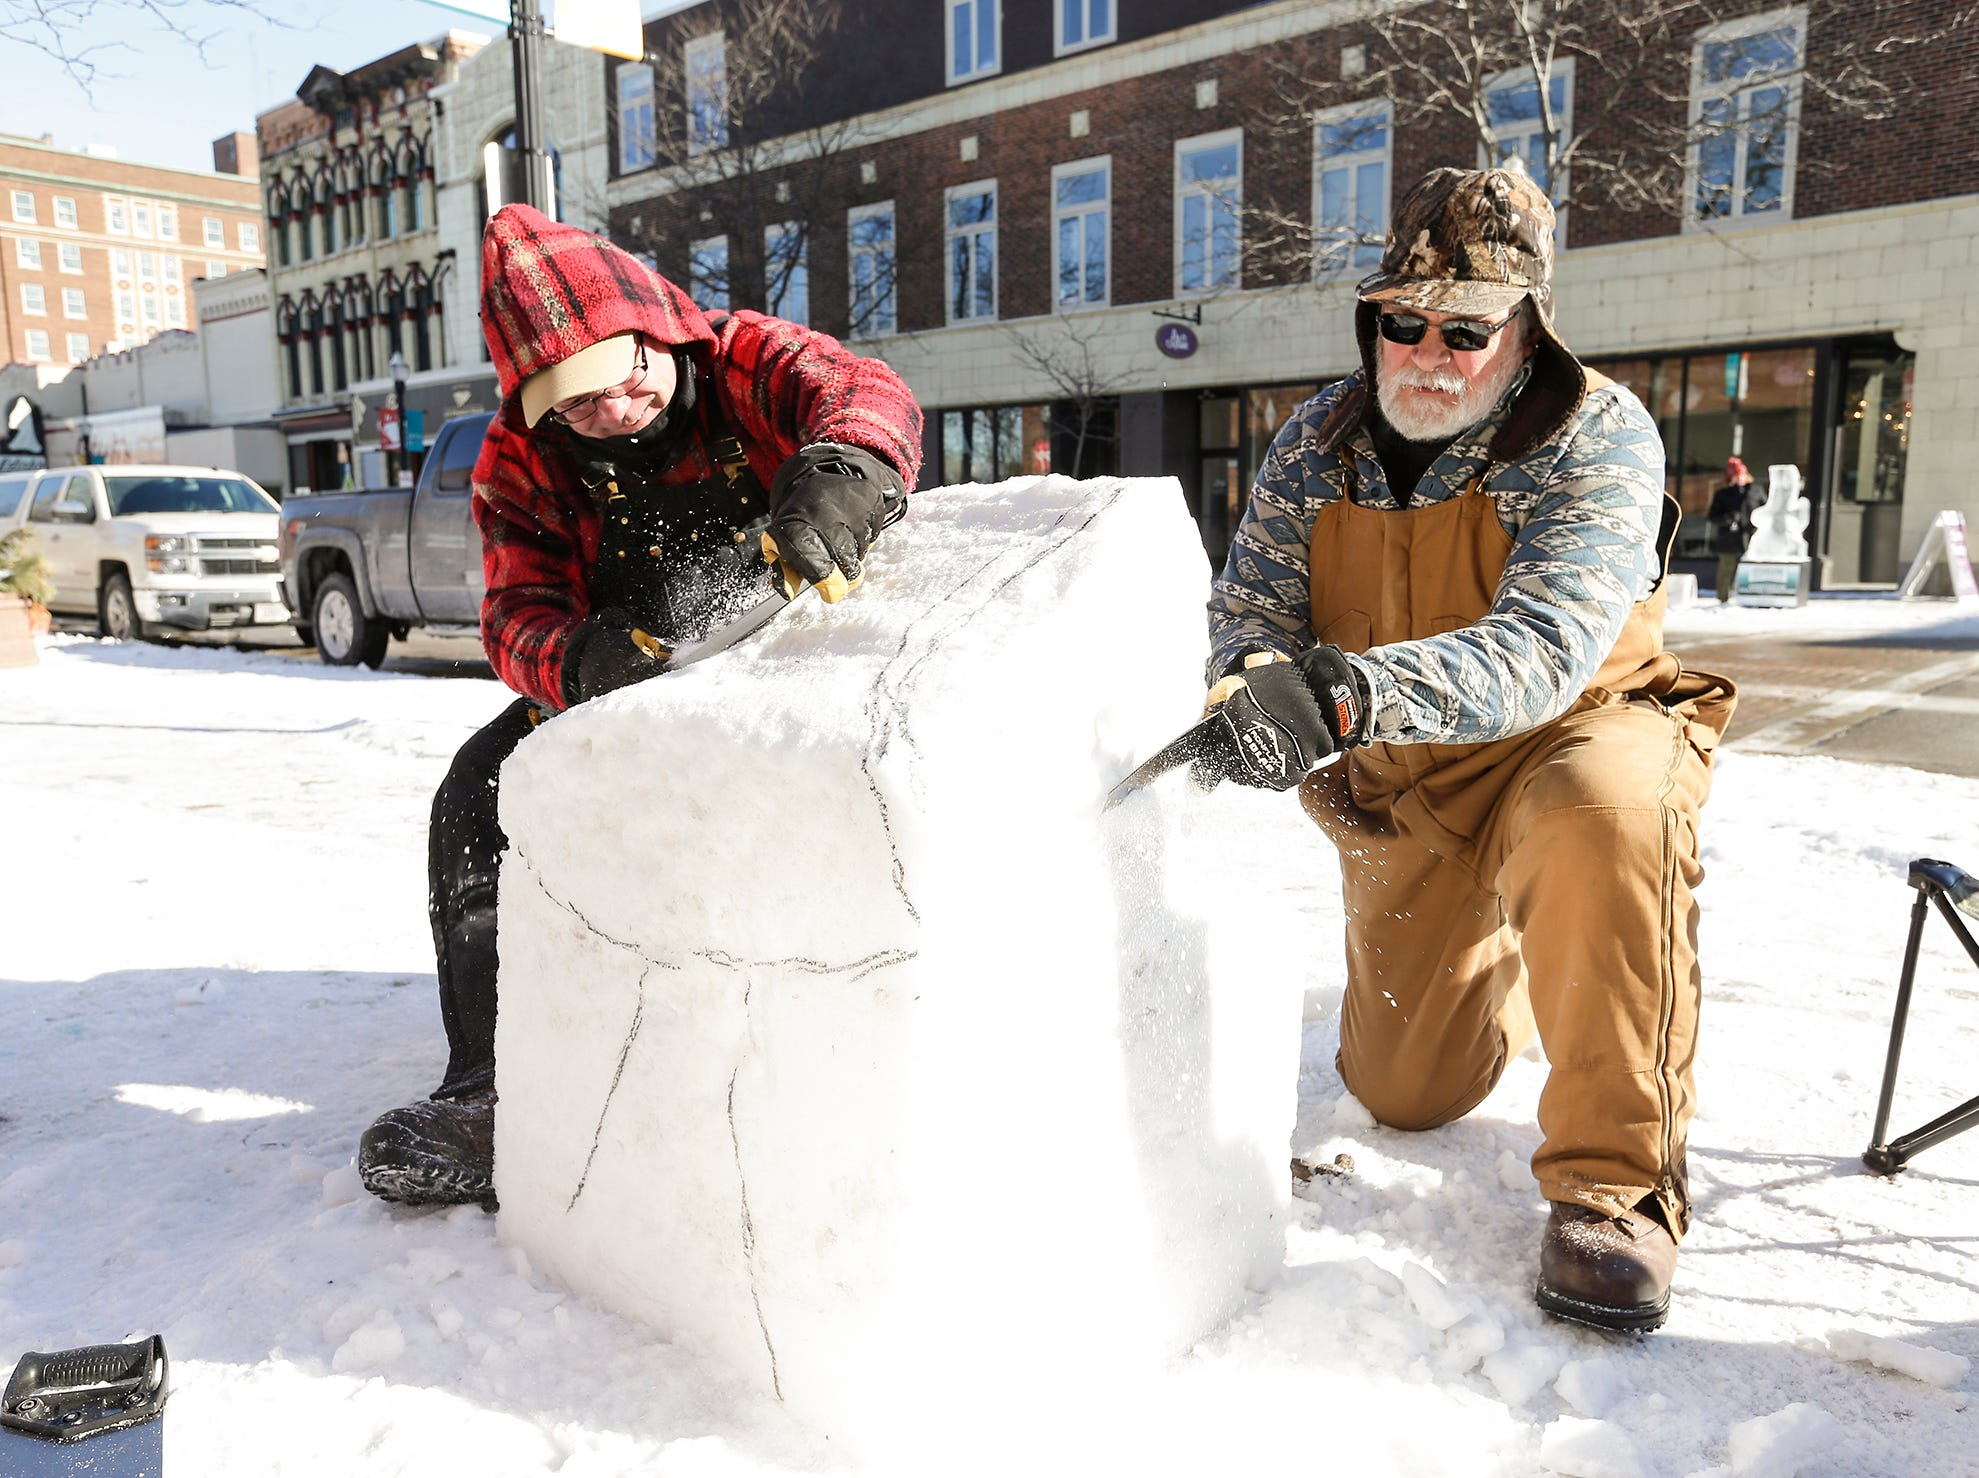 Randy Jahn of Lomira and David King of Randolph work on a snow sculpure Friday, February 8, 2019 on Main Street in downtown Fond du Lac during Sturgeon Spectacular. Sturgeon Spectacular is a weeklong celebration of the lake sturgeon spearing season and includes events on and off the ice in the Fond du Lac area. Doug Raflik/USA TODAY NETWORK-Wisconsin